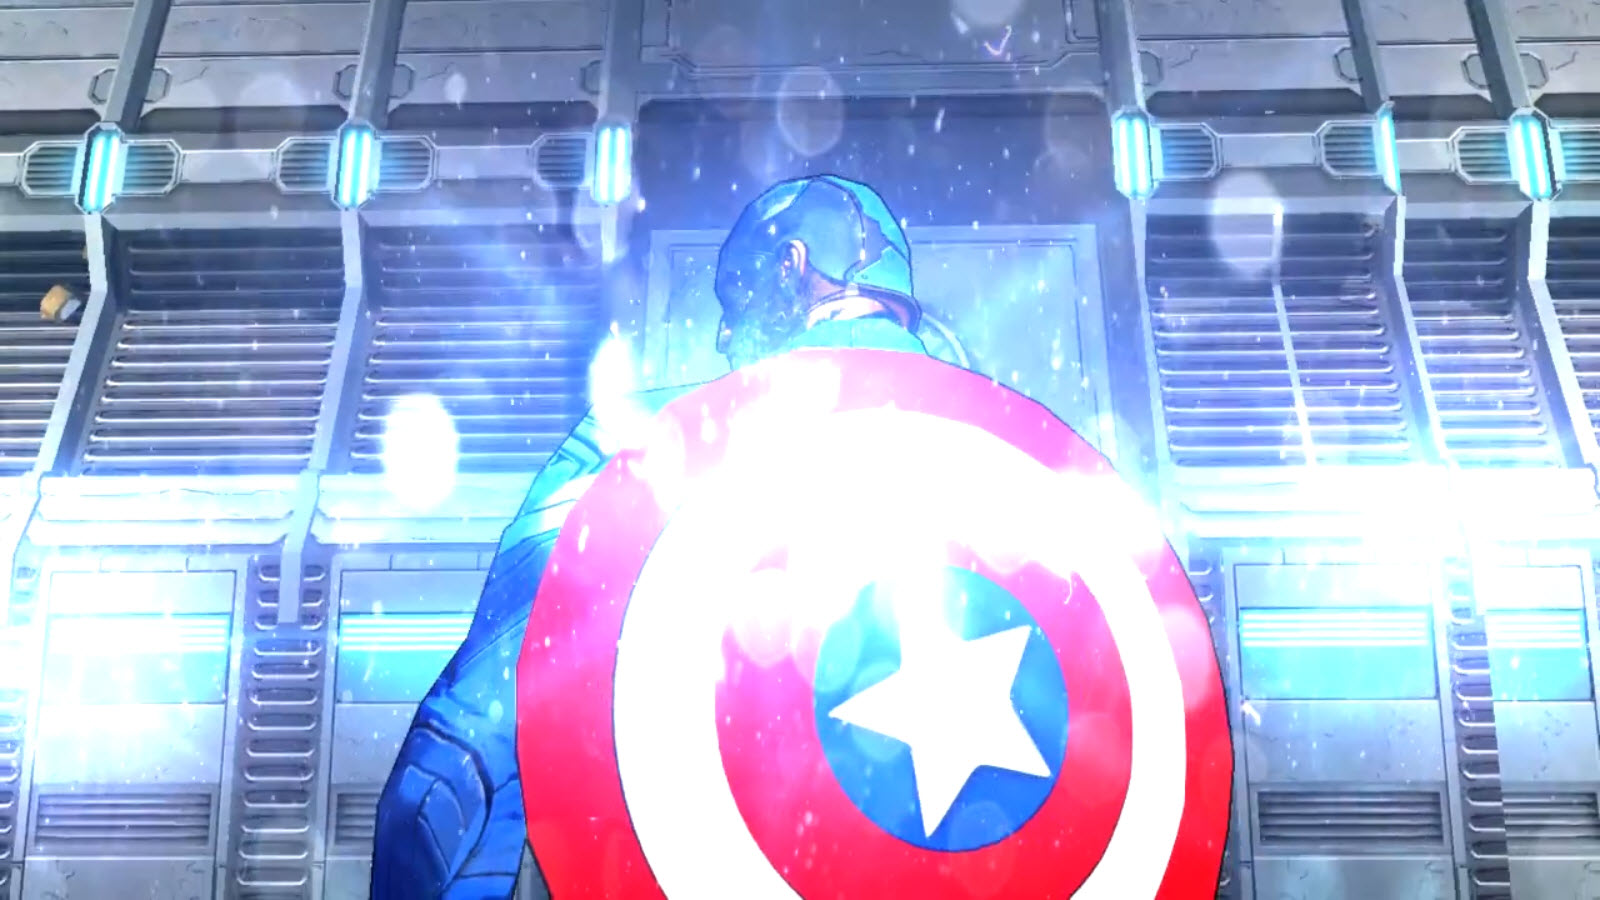 Gameloft teases Captain America: The Winter Soldier mobile game (video)